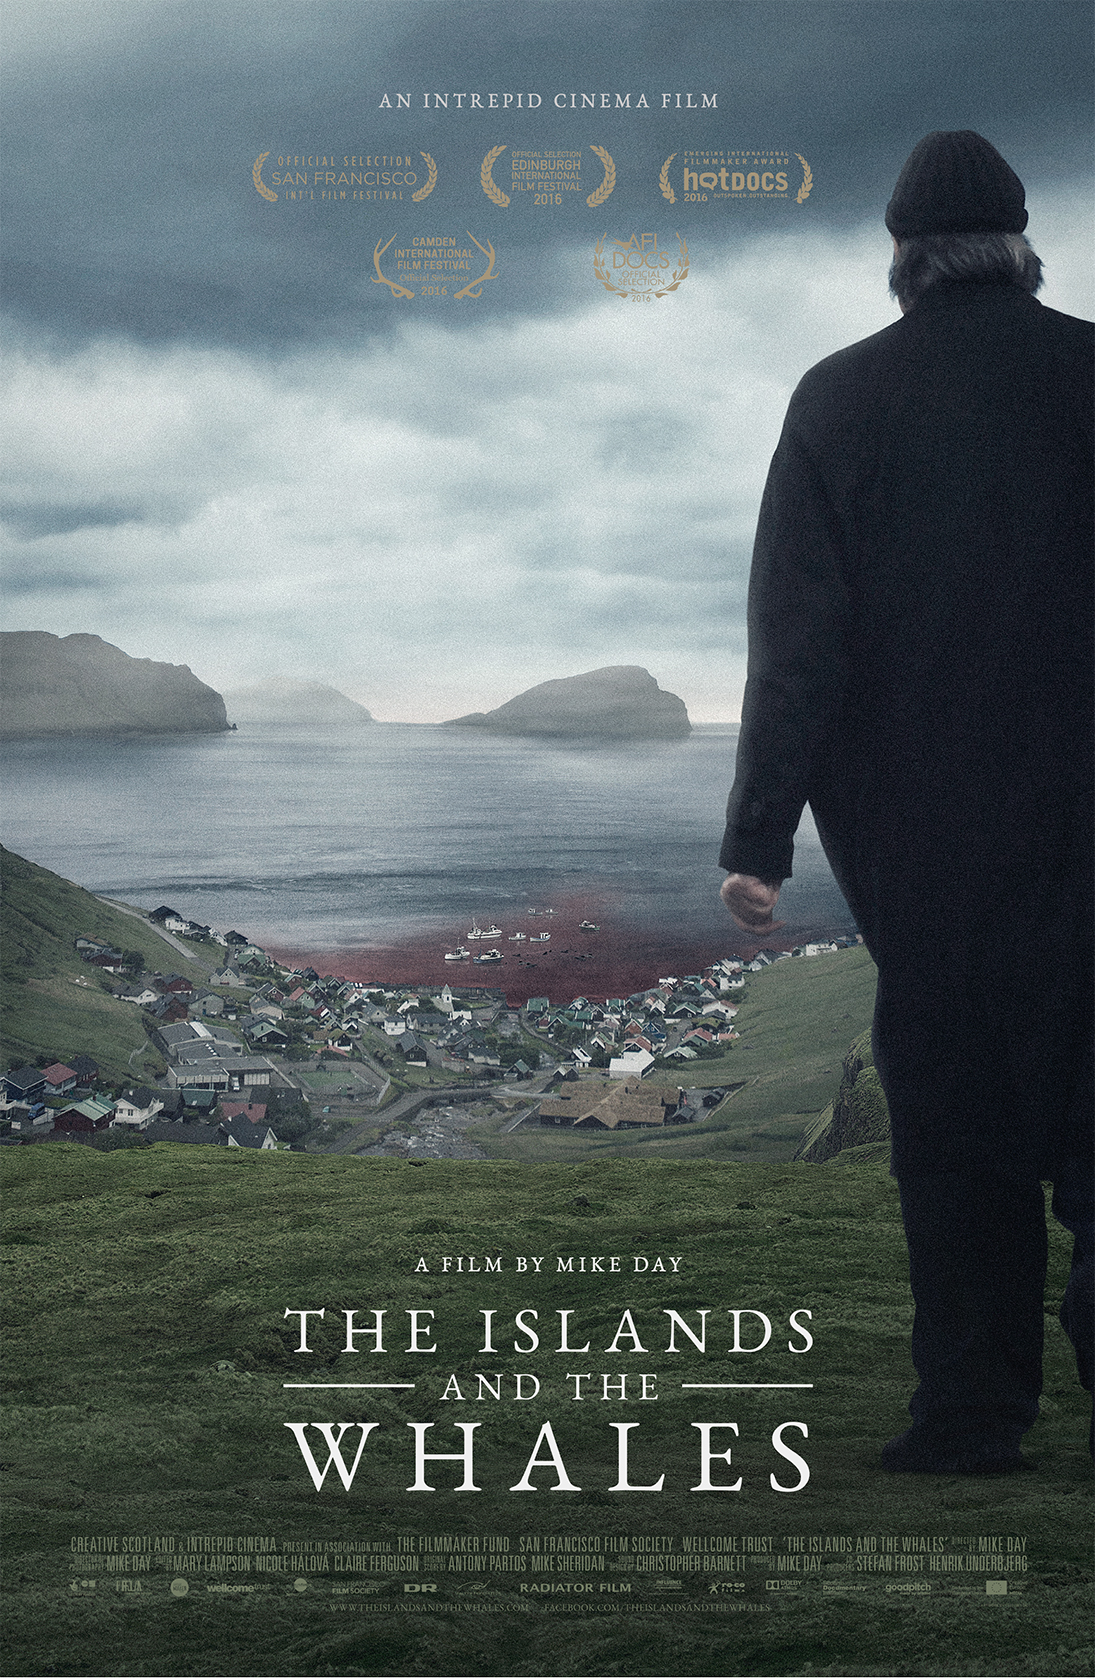 The Islands and the Whales – Mar. 23